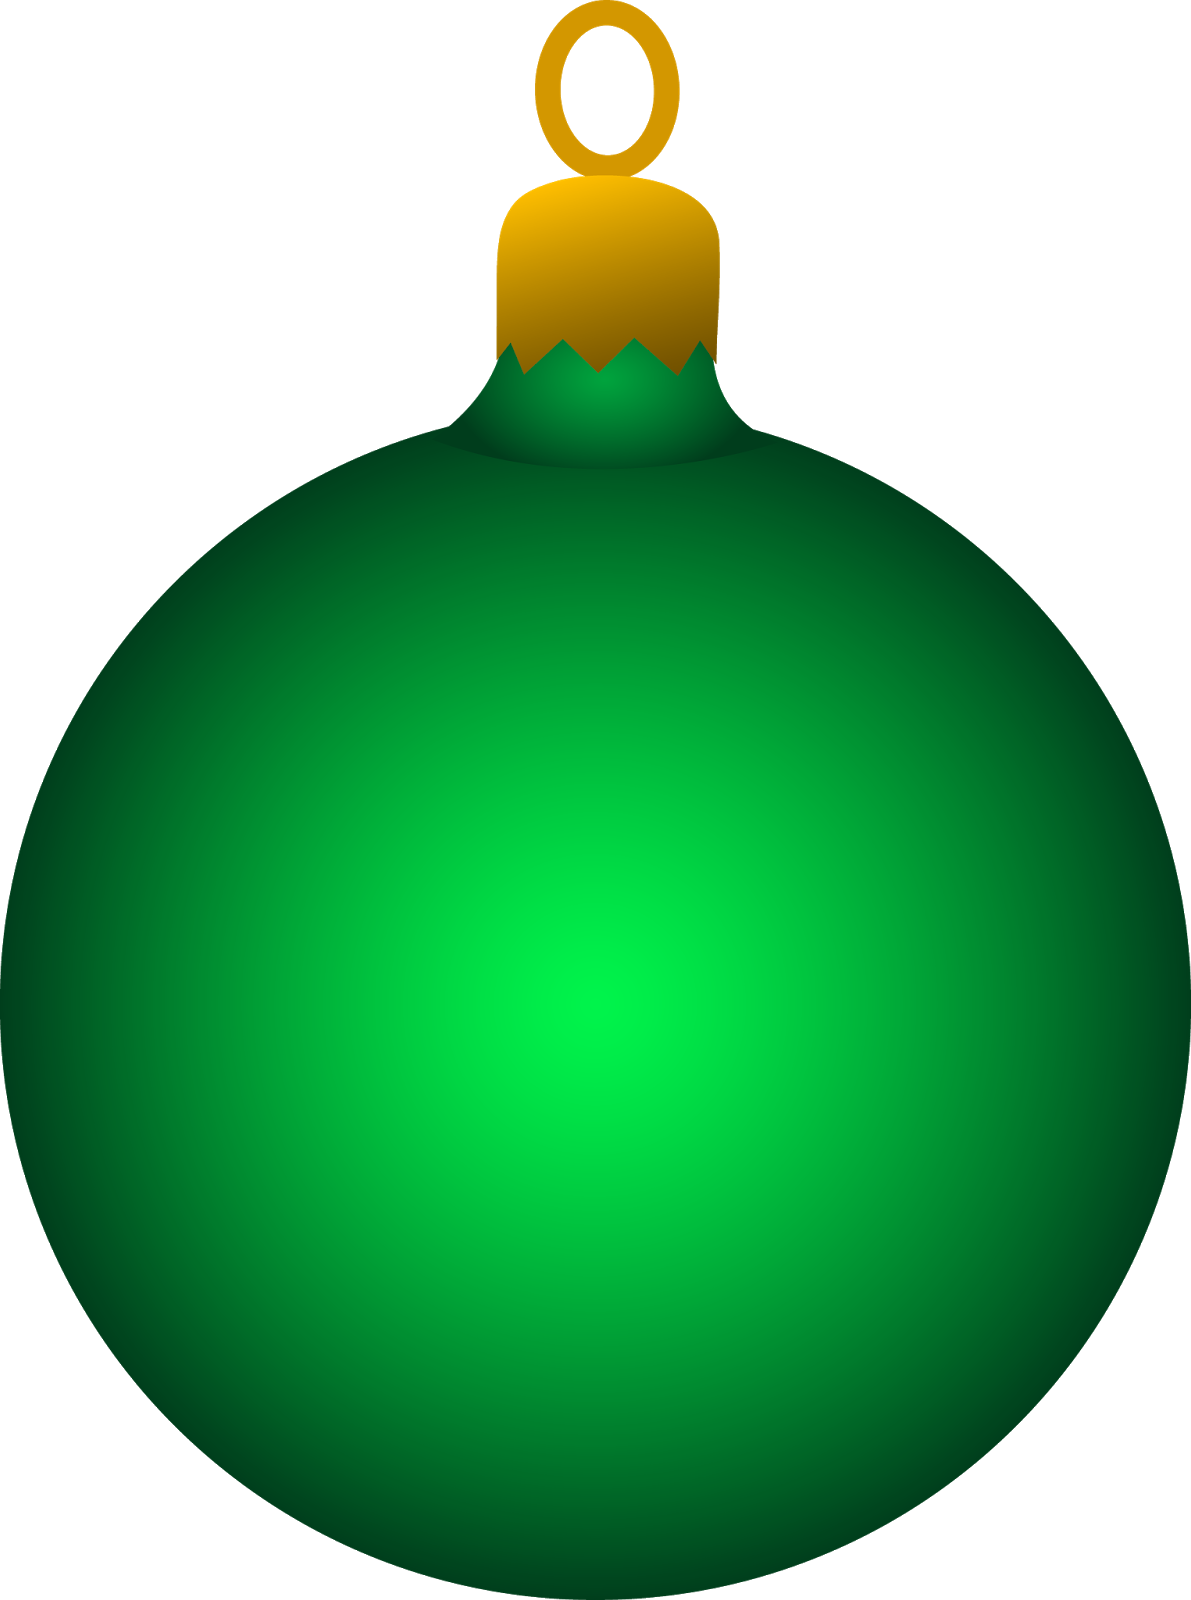 Ornaments clipart sphere. Cliparthot of ornament which